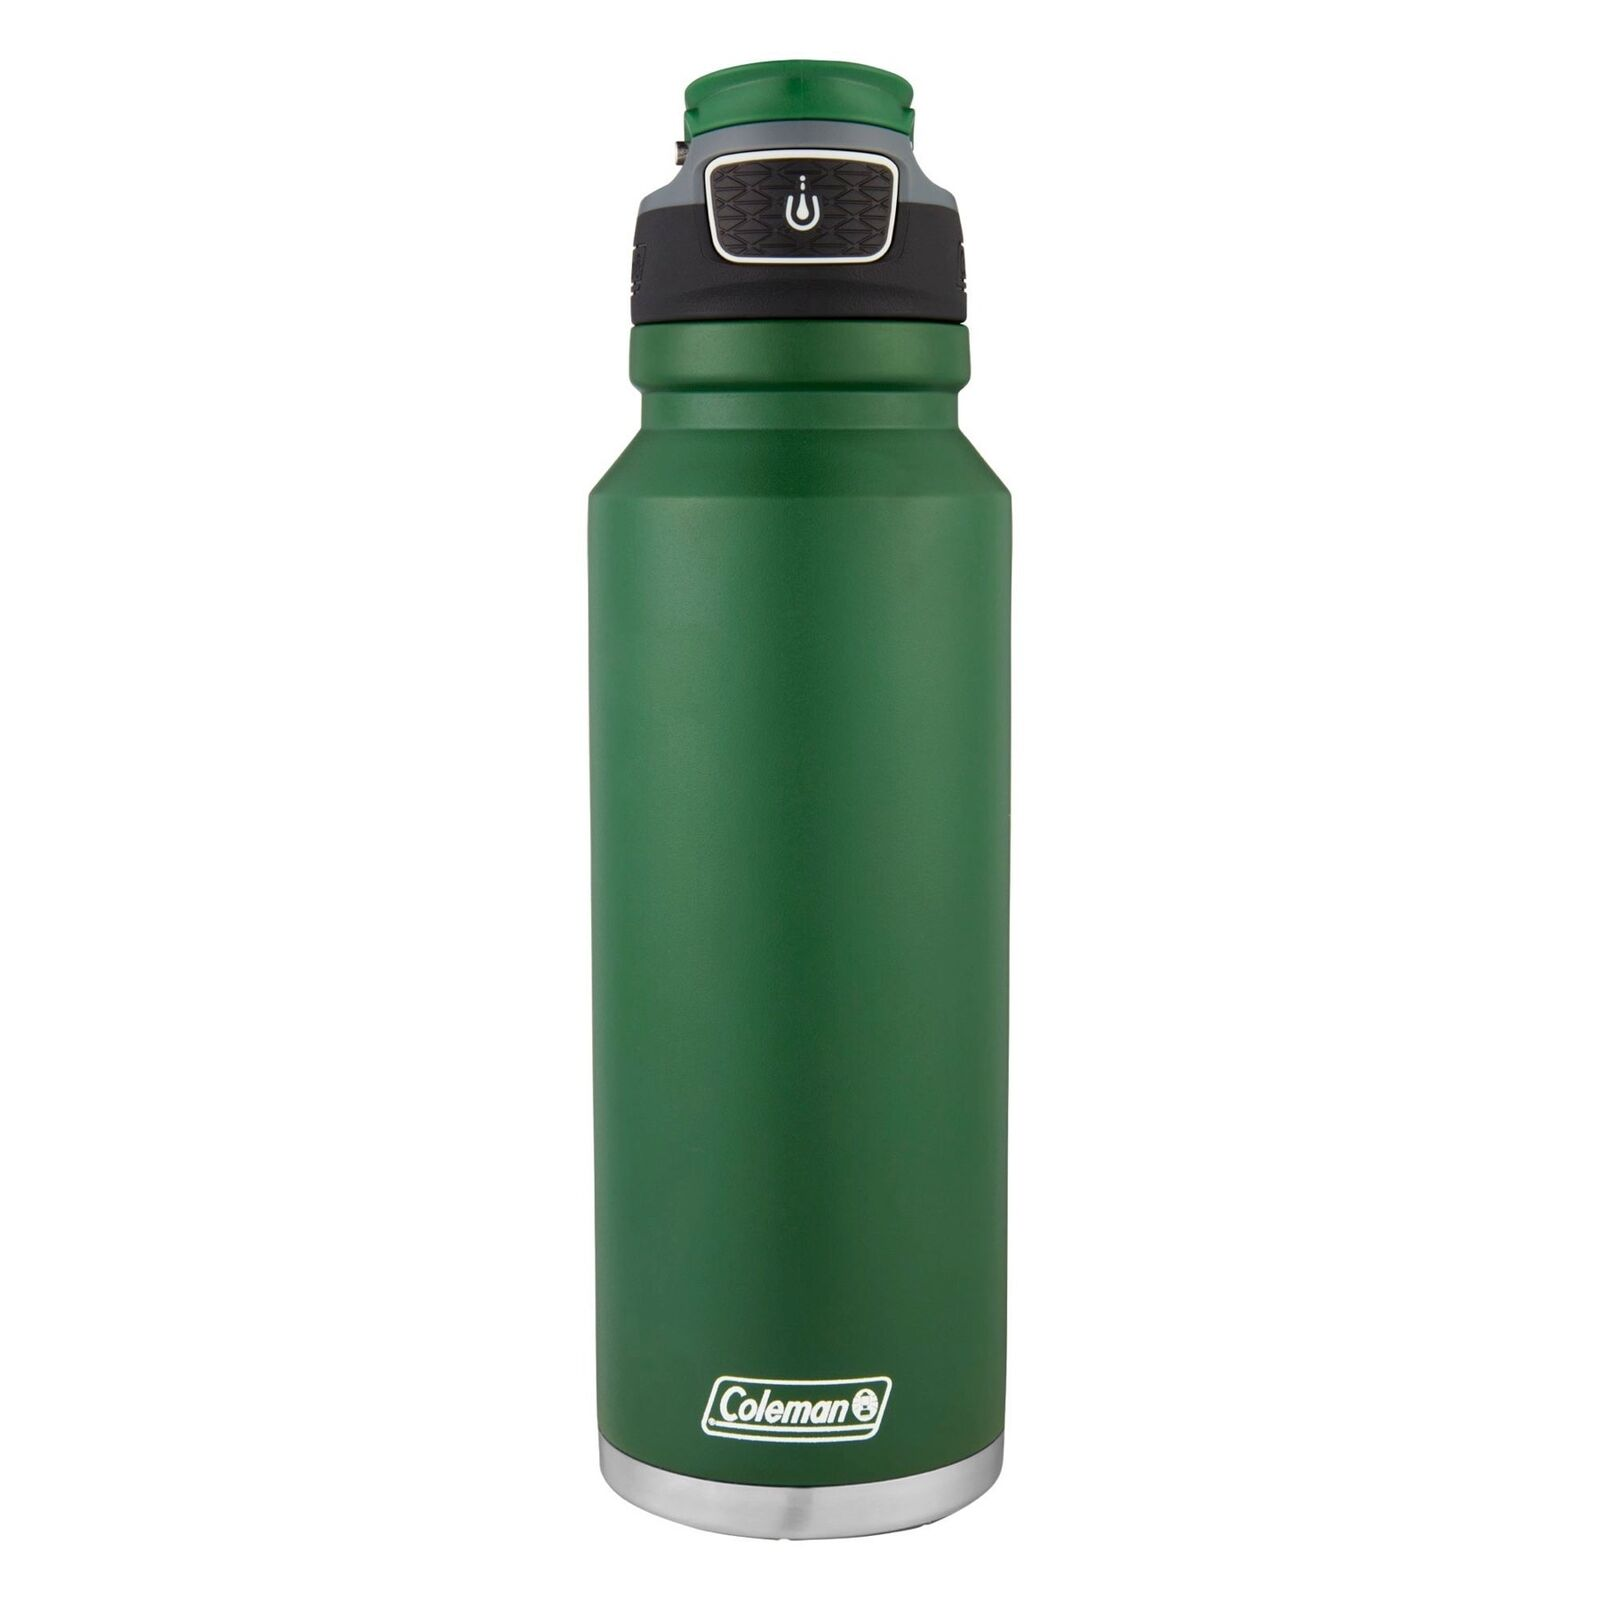 Coleman FreeFlow Autoseal Water Bottle 40oz Heritage Green Stainless Steel Sport